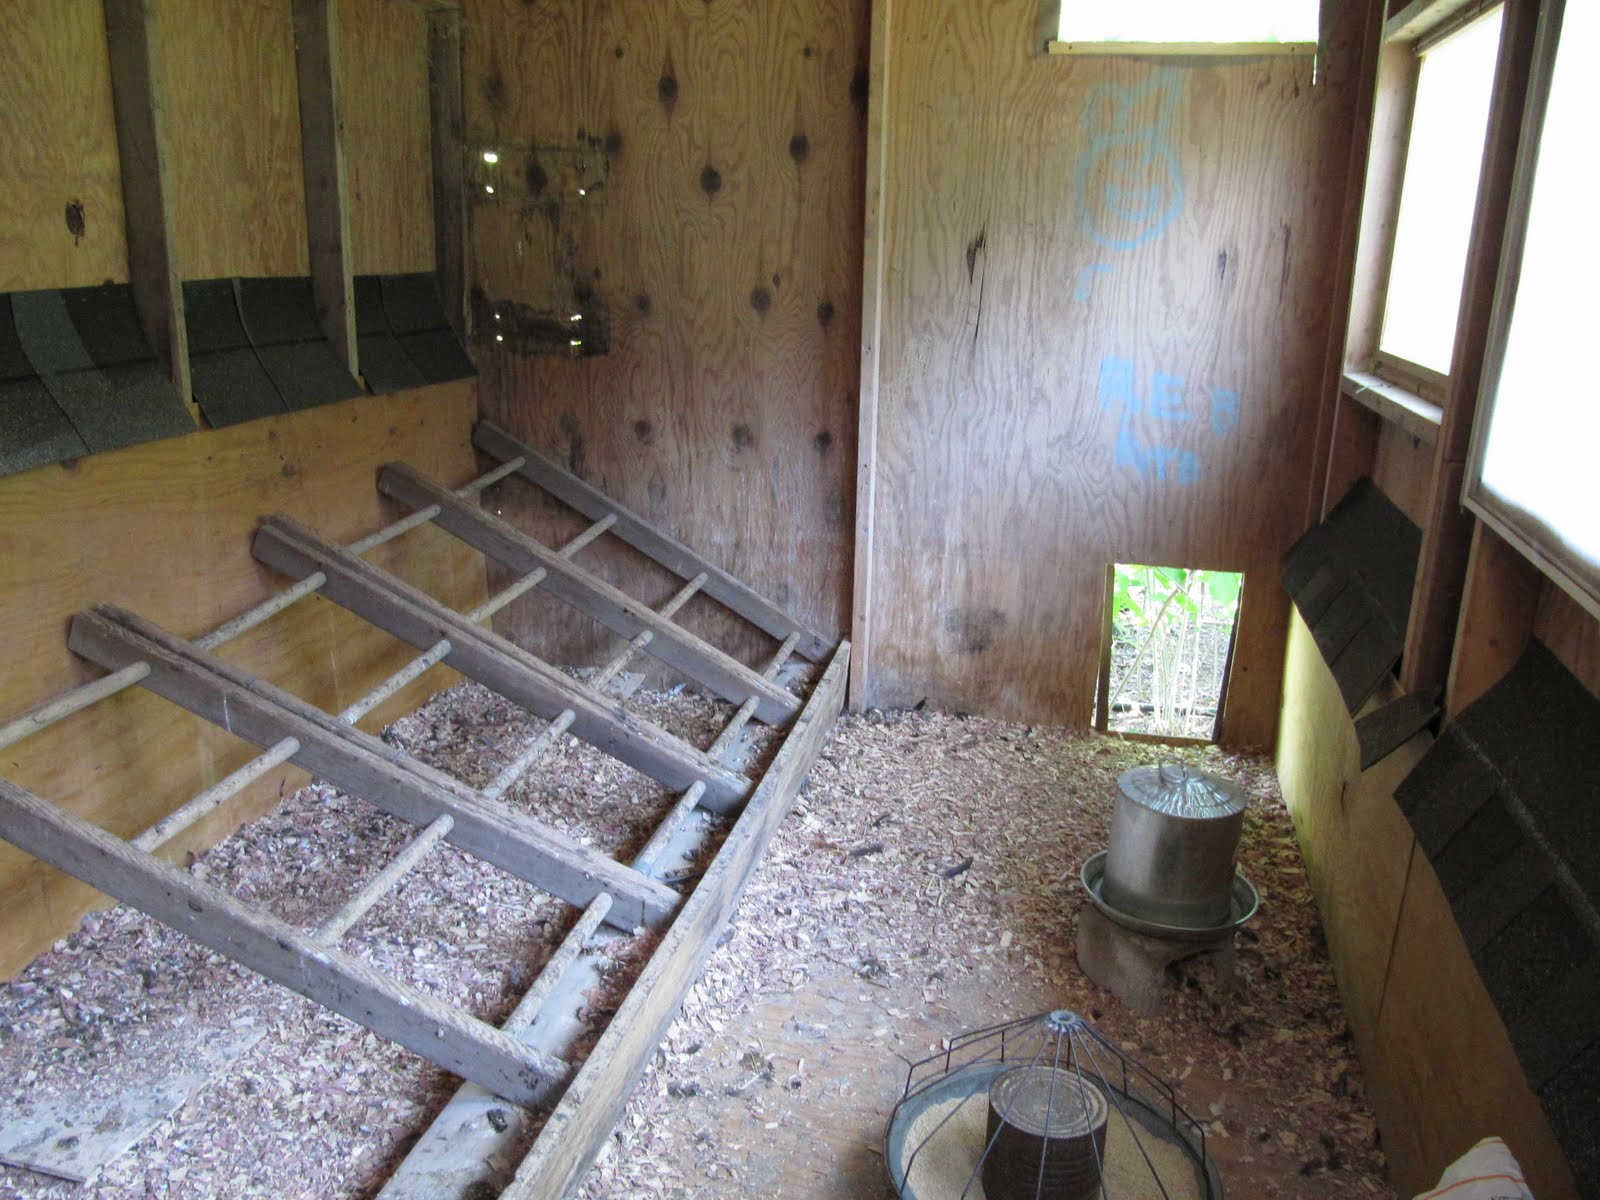 Chicken coop inside layout - photo#27